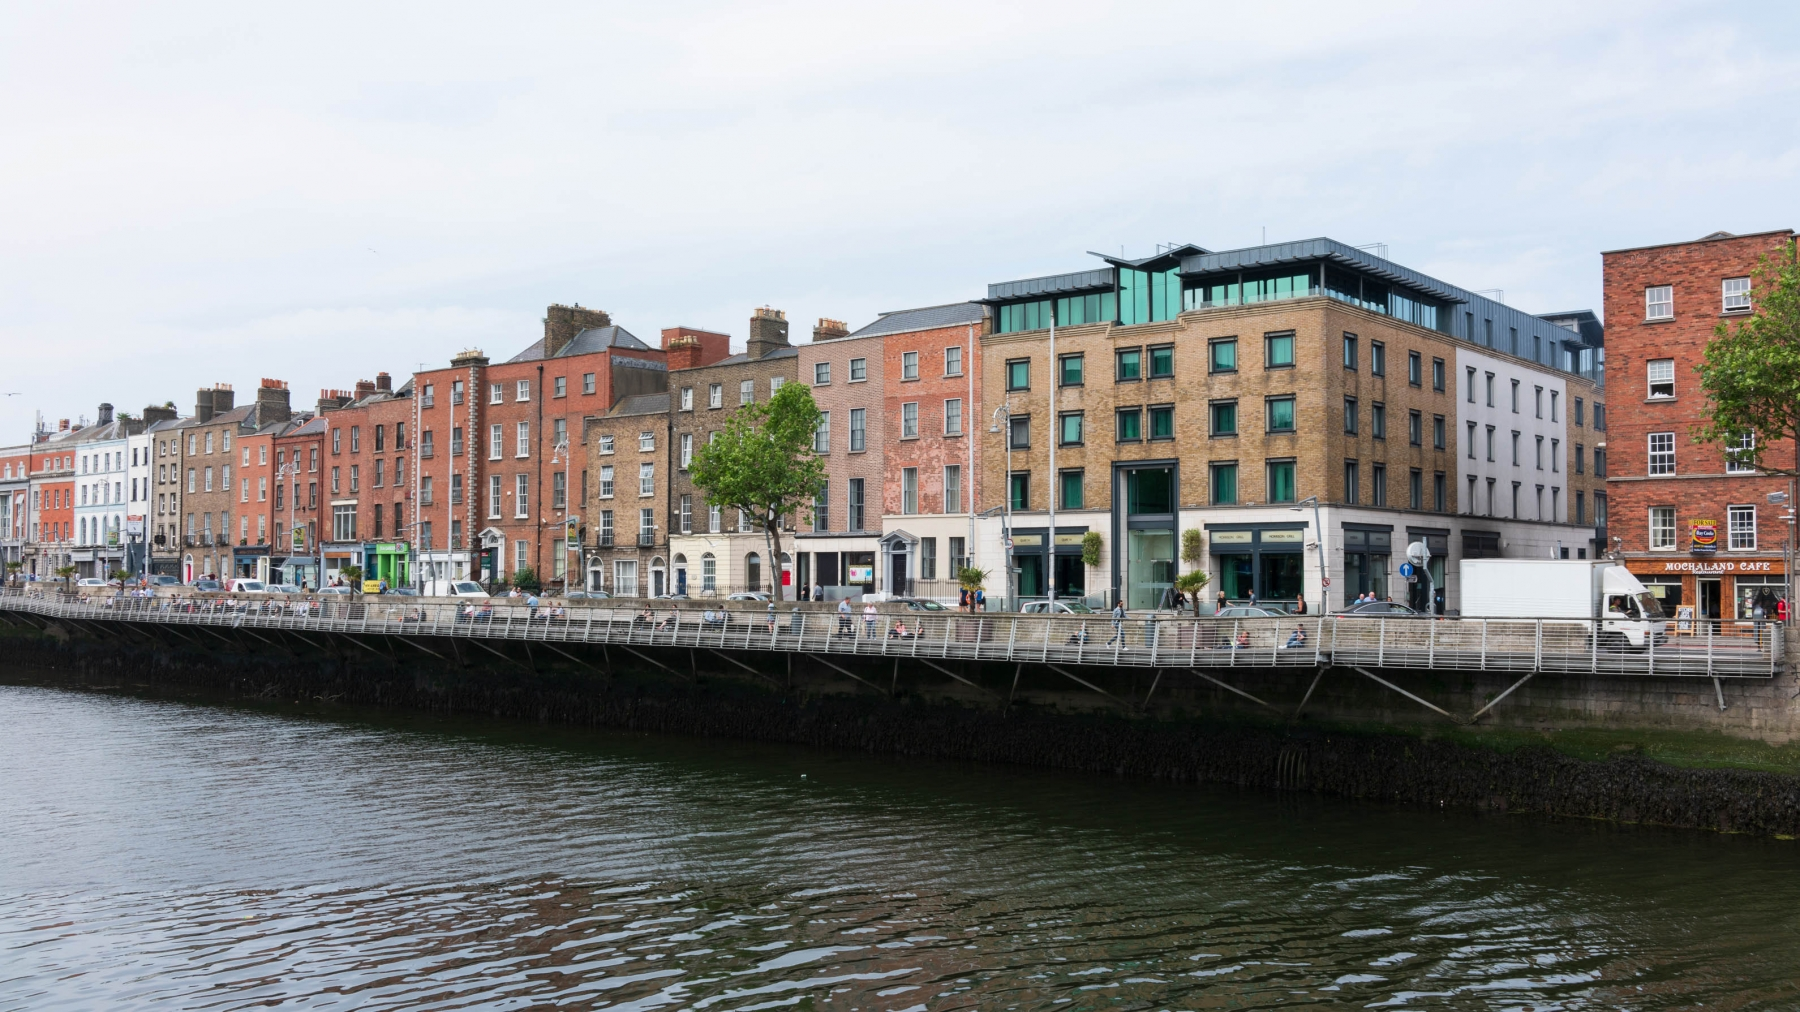 Dublin is a city divided by the River Liffey. Most of the tourist attractions are on the South Side.